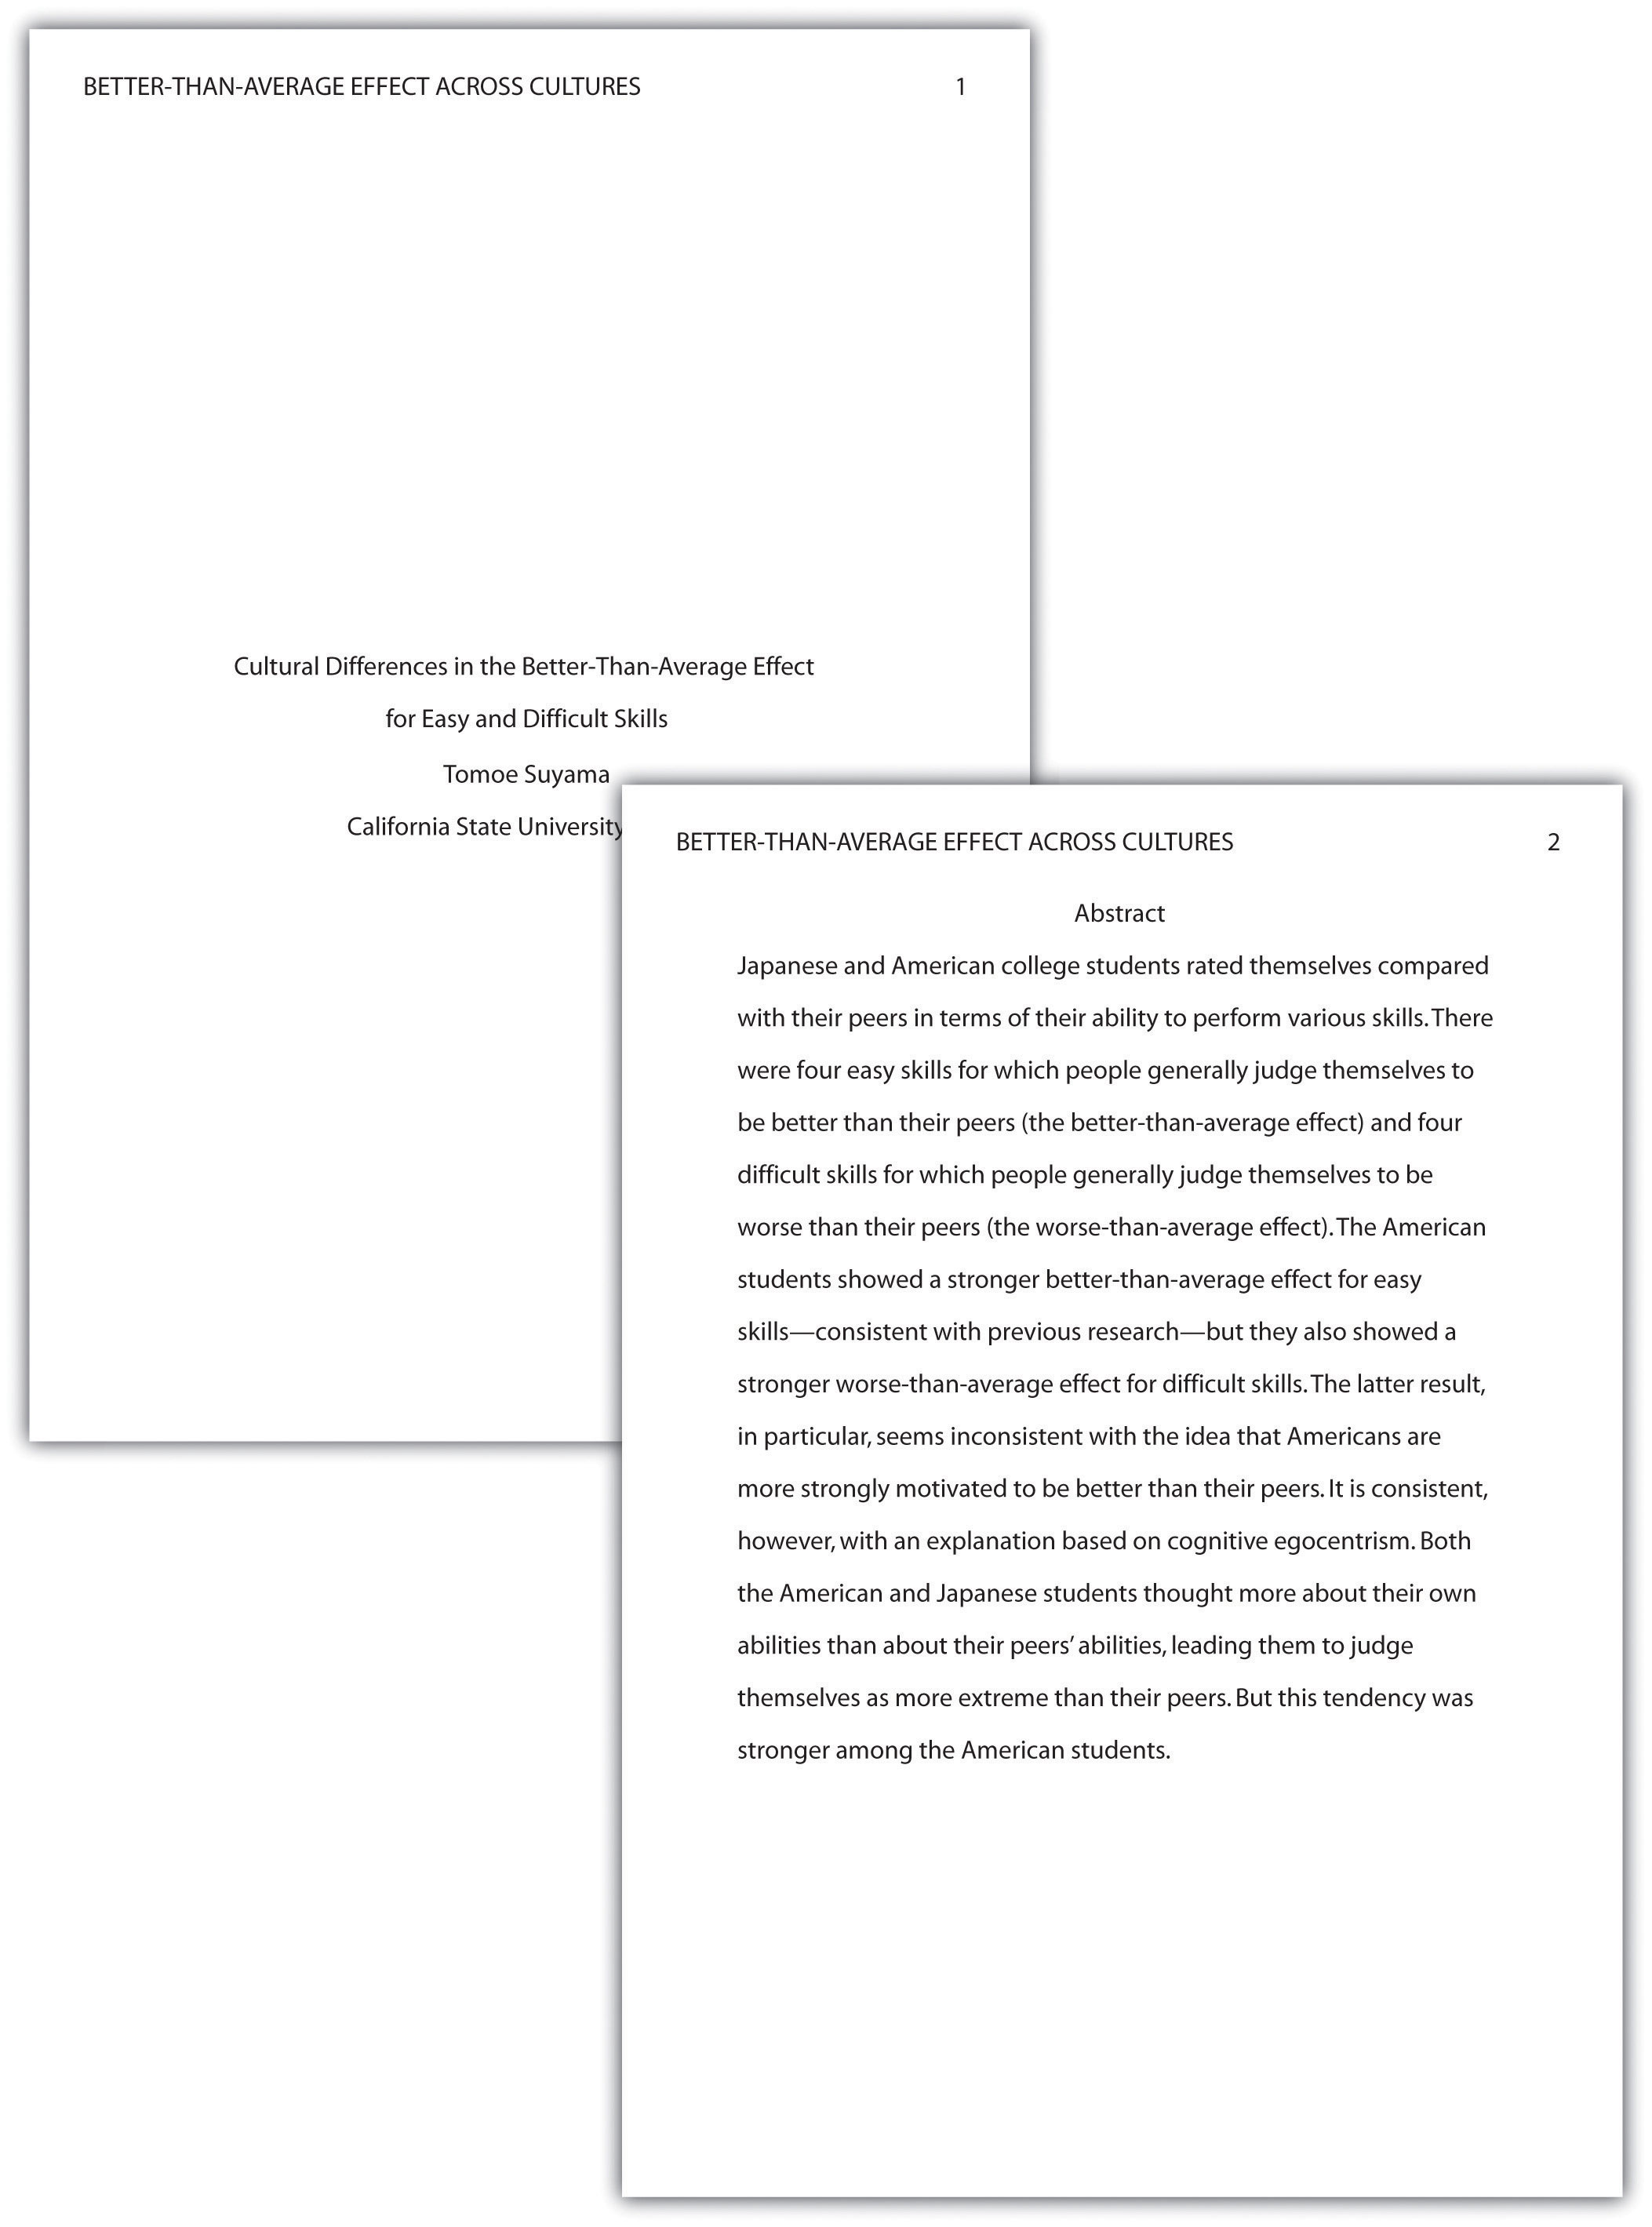 apa paper research writing Apa paper formatting & style guidelines your teacher may want you to format your paper using apa double space the entire research paper write a summary of.